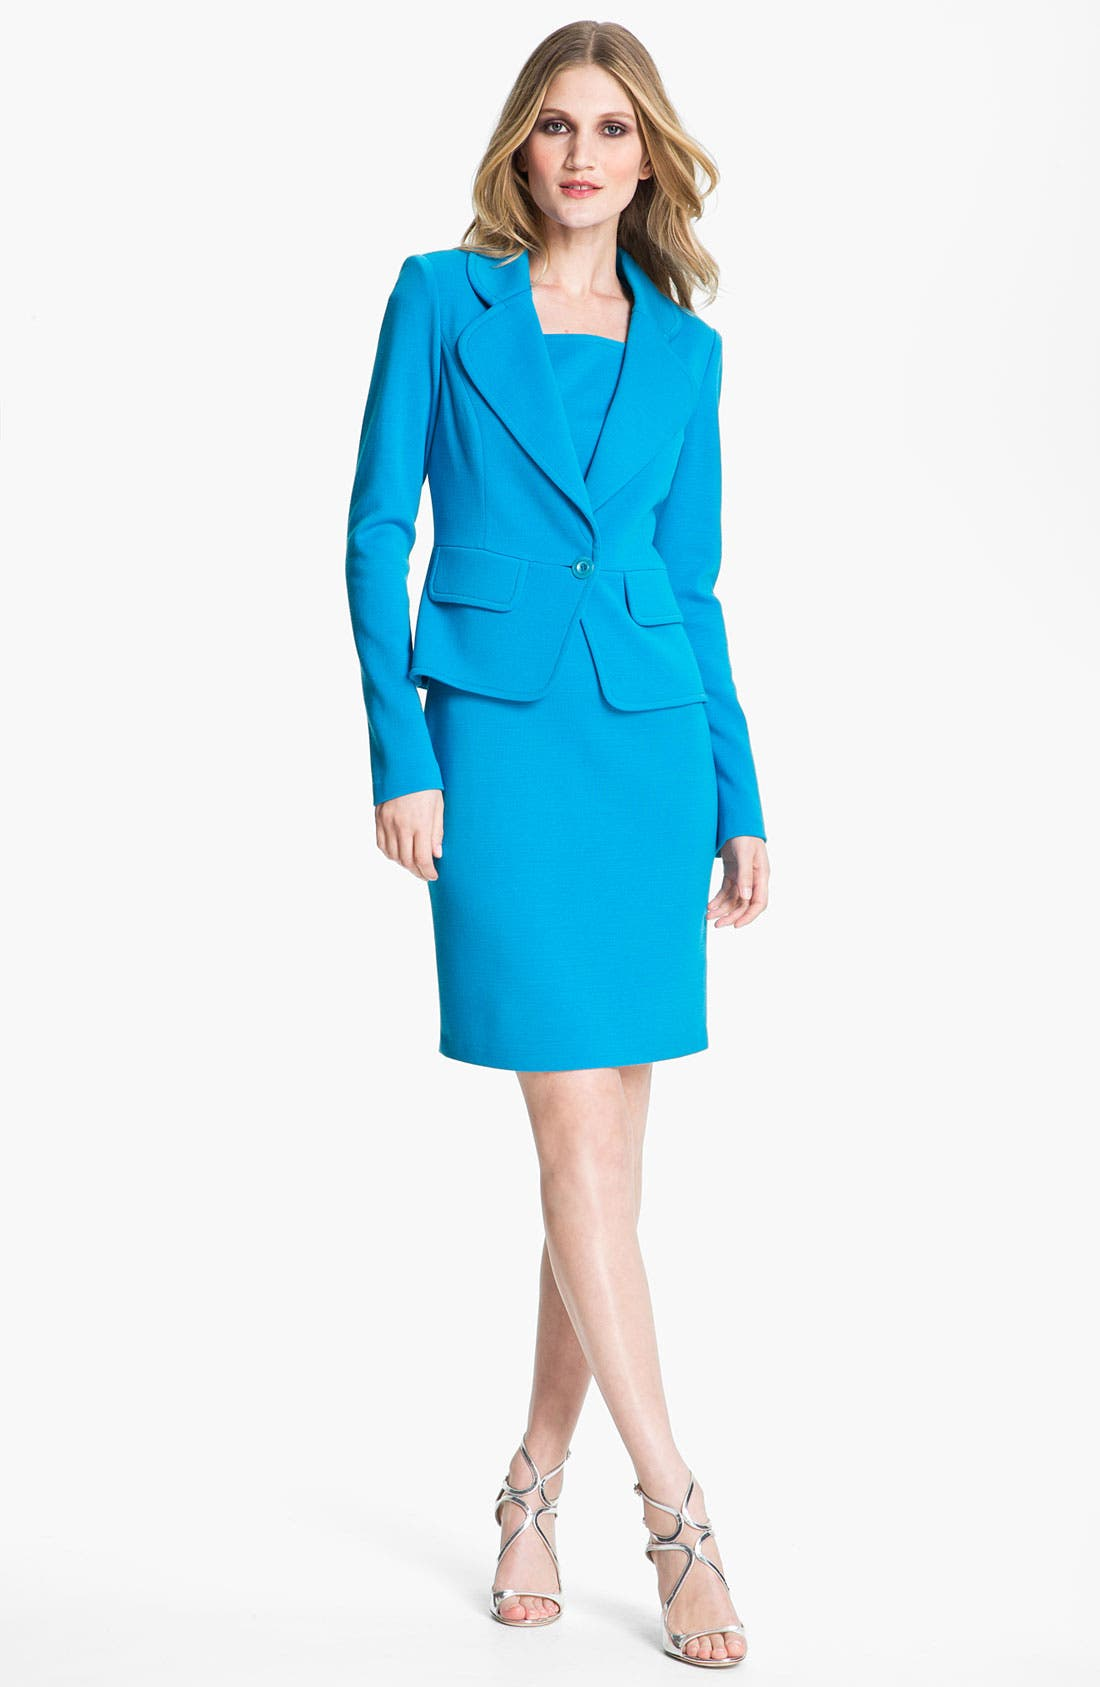 Main Image - St. John Collection Jacket & Sheath Dress